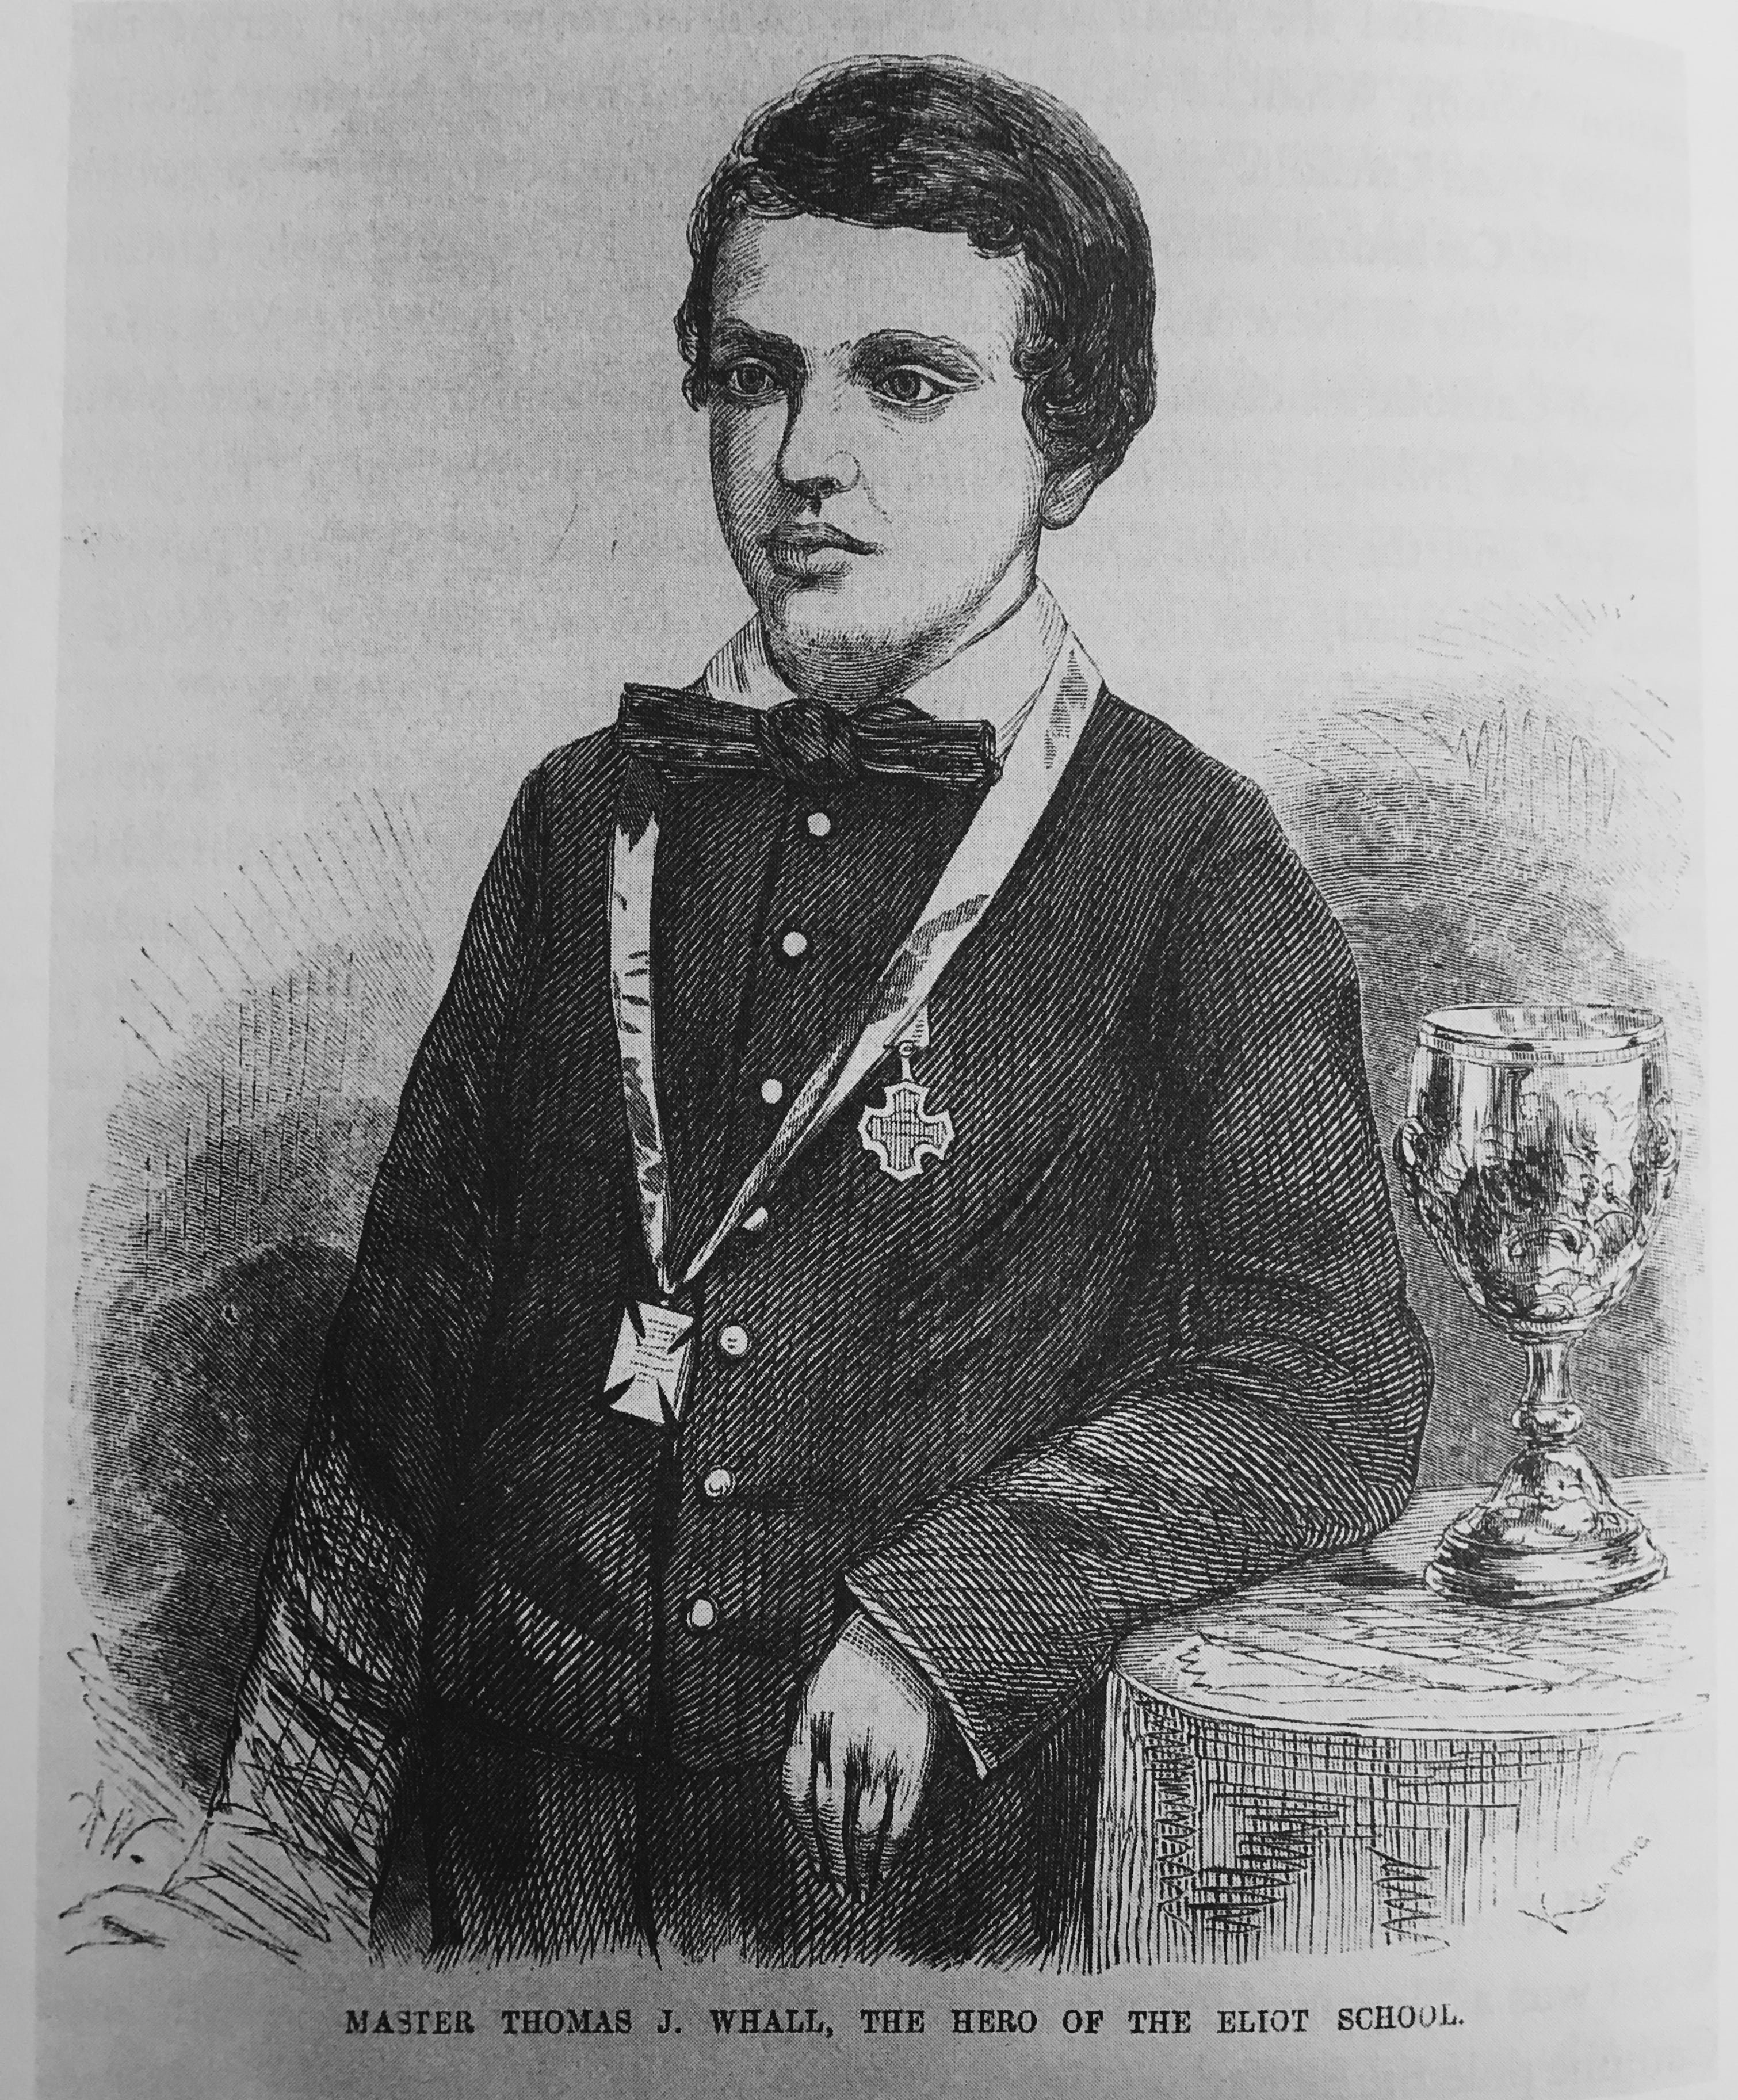 Young Thomas Whall with a goblet from the Catholic community in Covington, Kentucky, and several medals from Catholic churches throughout the nation